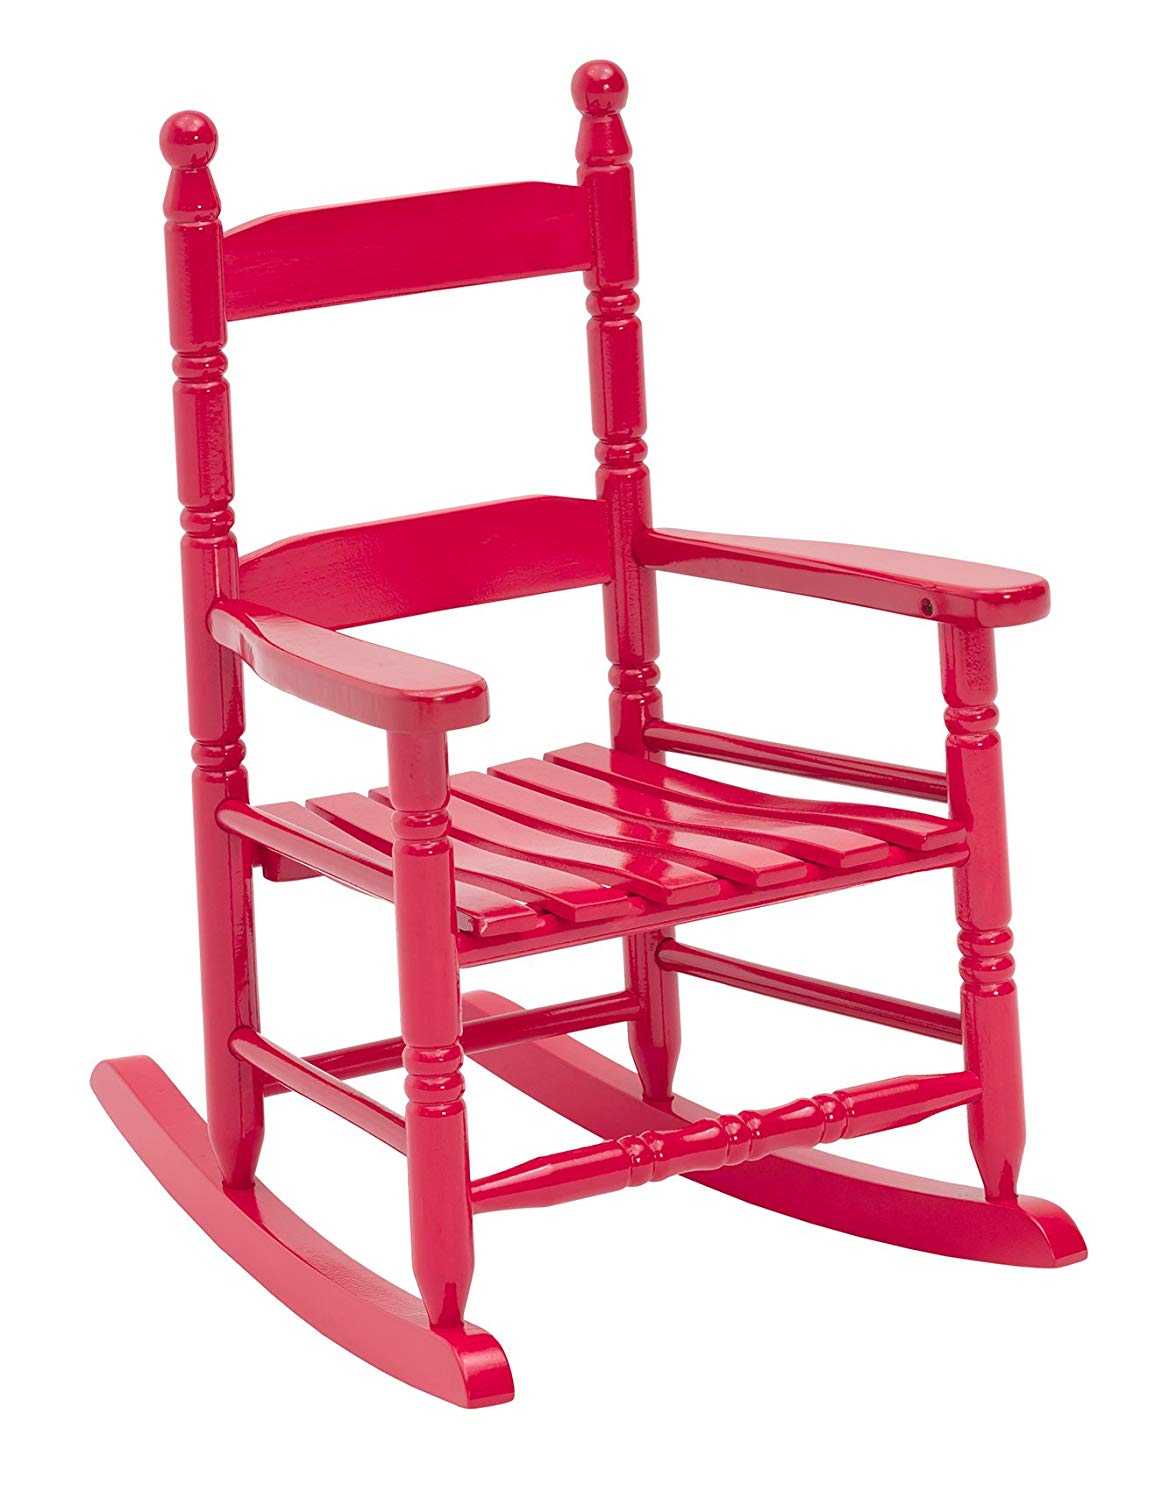 Jack-Post KN-10R Classic Child's Porch Rocker Red